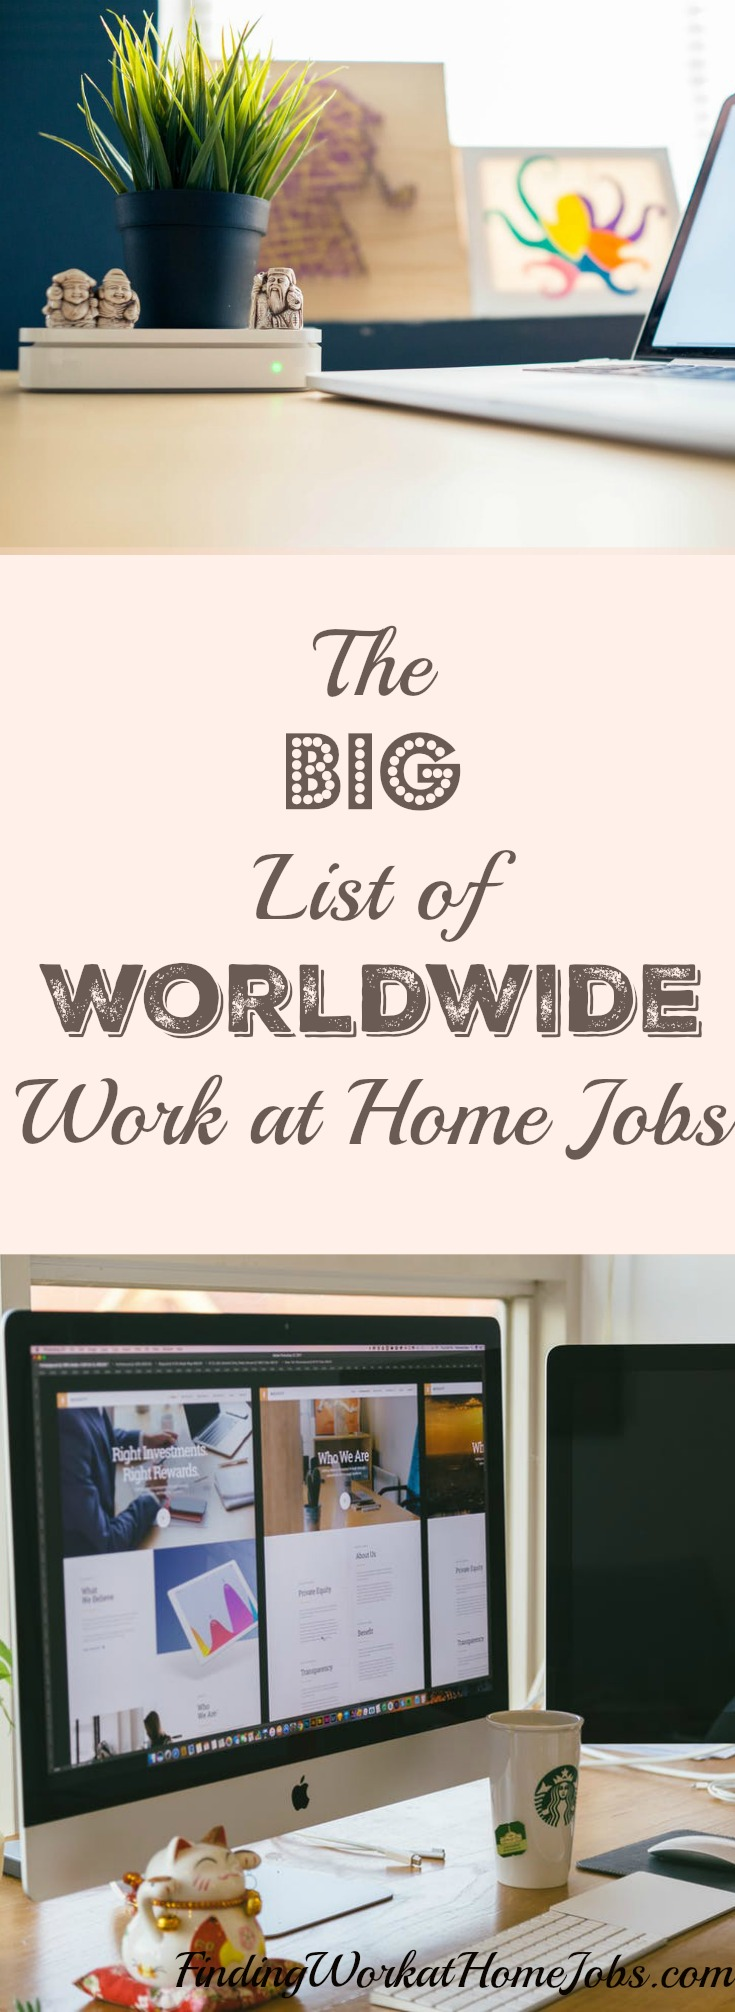 The big list of worldwide work at home jobs